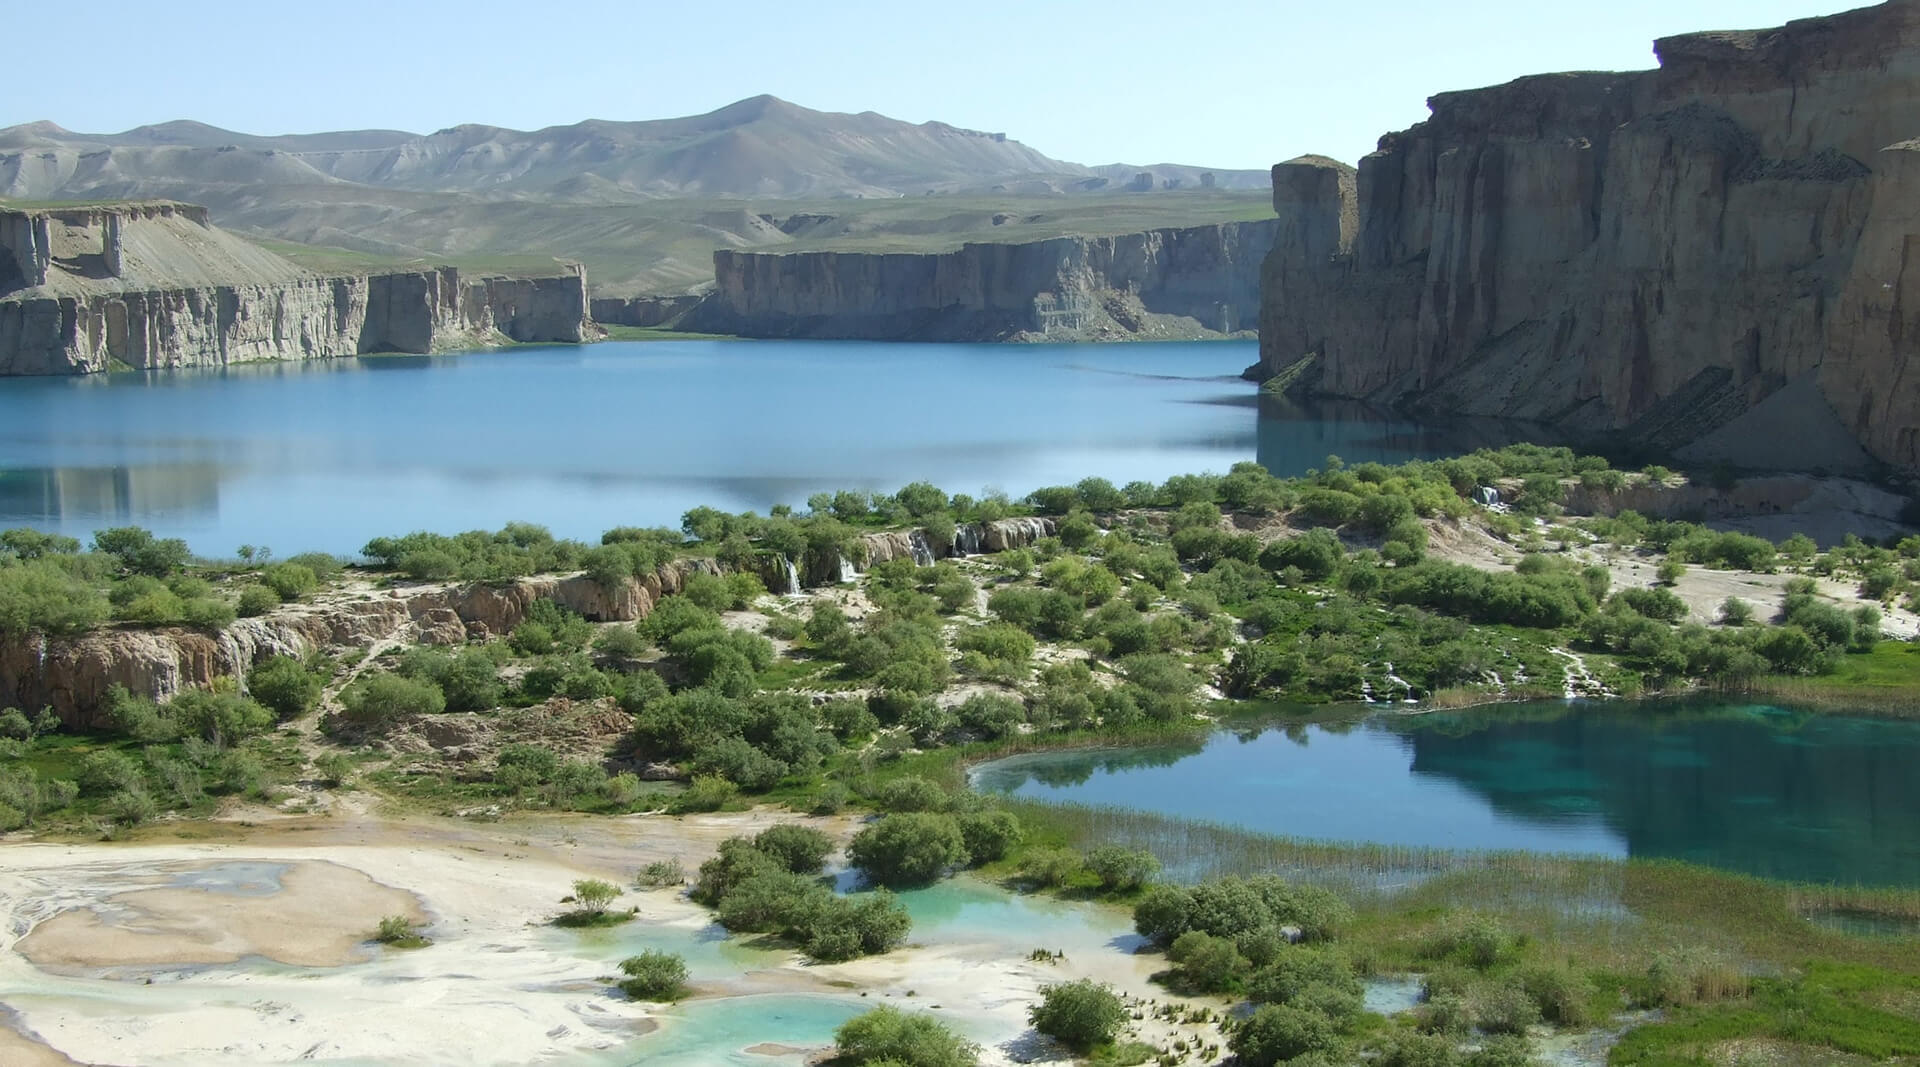 Interlocking turquoise lakes contrast with the arid brown landscape of Band-e-Amir  | Cross Border Conversations | Pradip Krishen X Prof. Anne Feenstra | STIR X LOCO Design